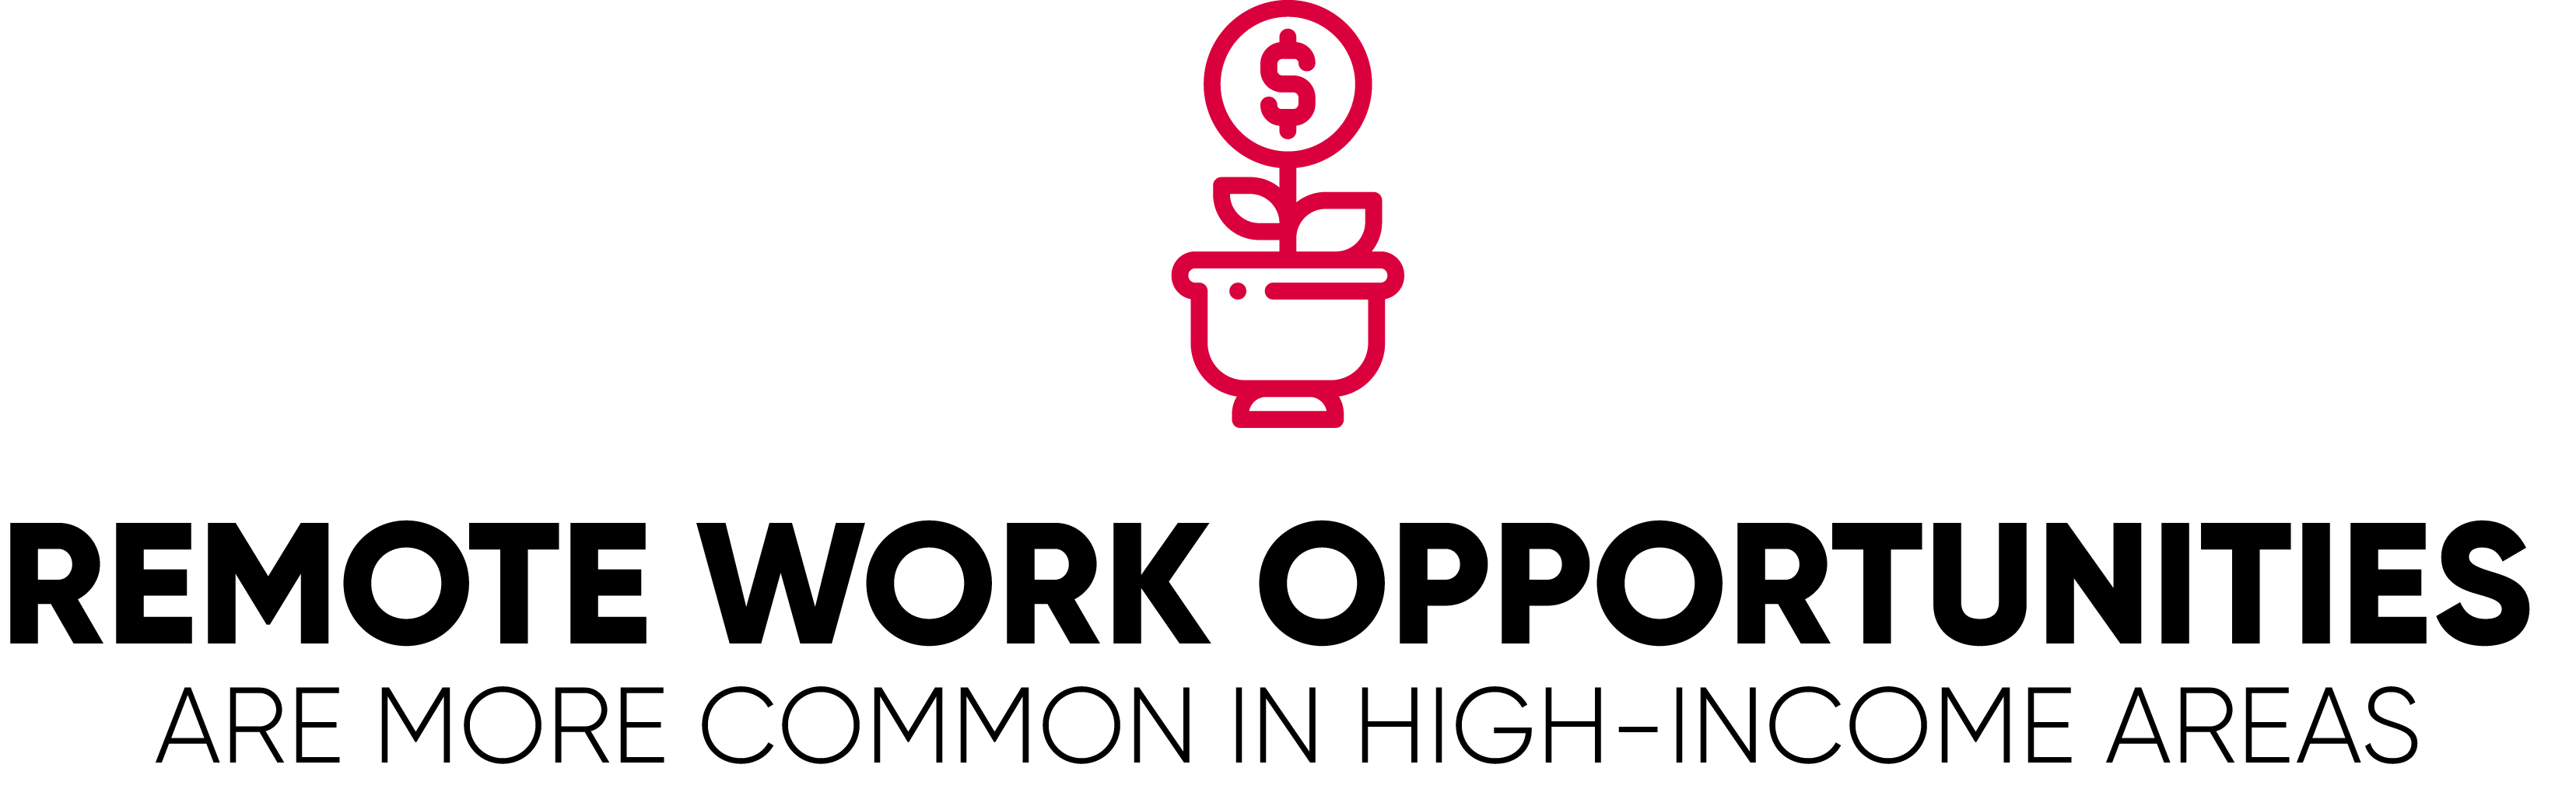 Remote Work Opportunities Are More Common in High Income Areas